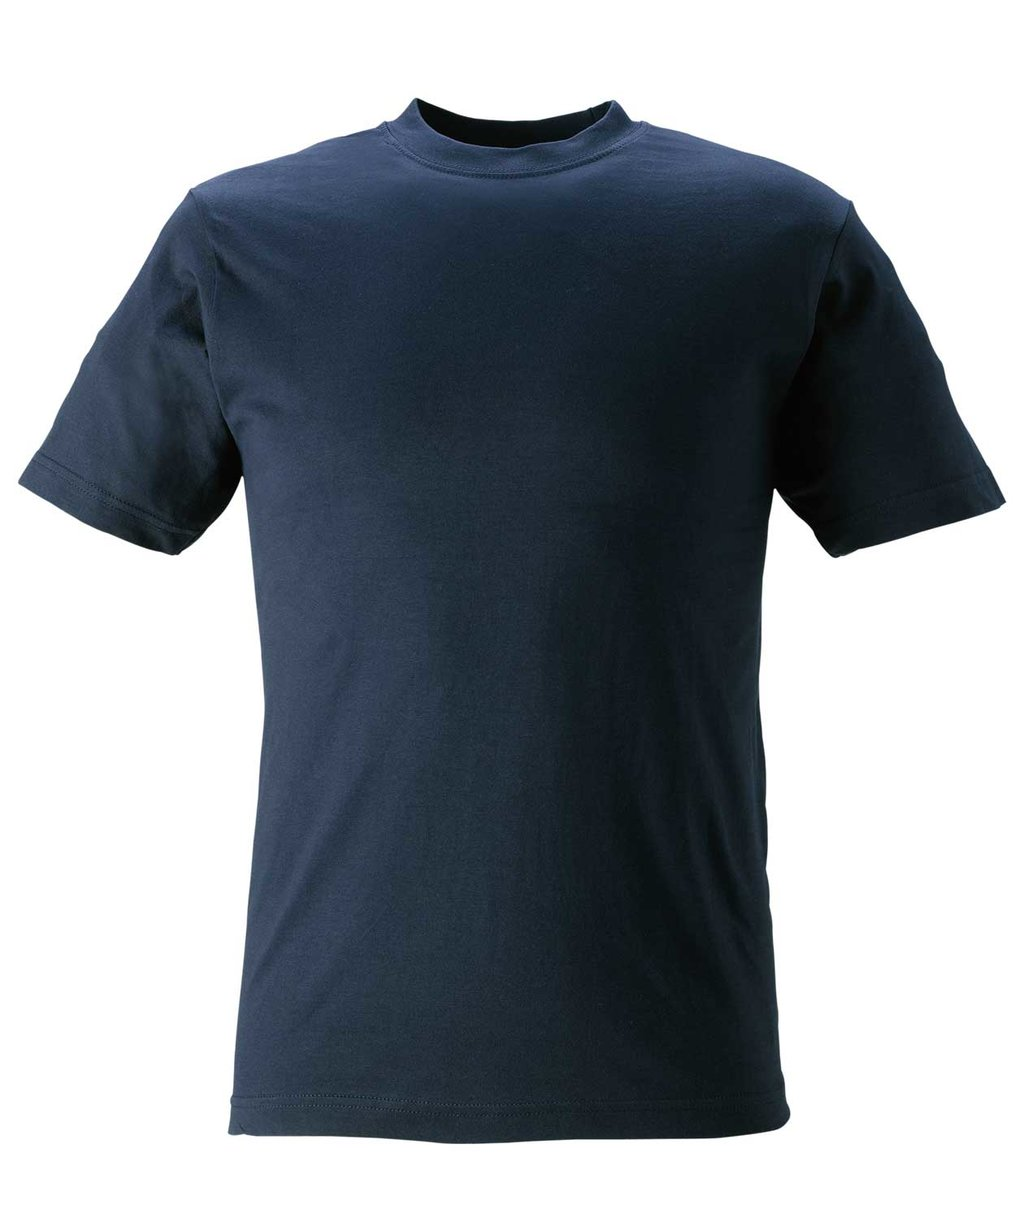 South West Kings ekologisk T-shirt till barn, Navy